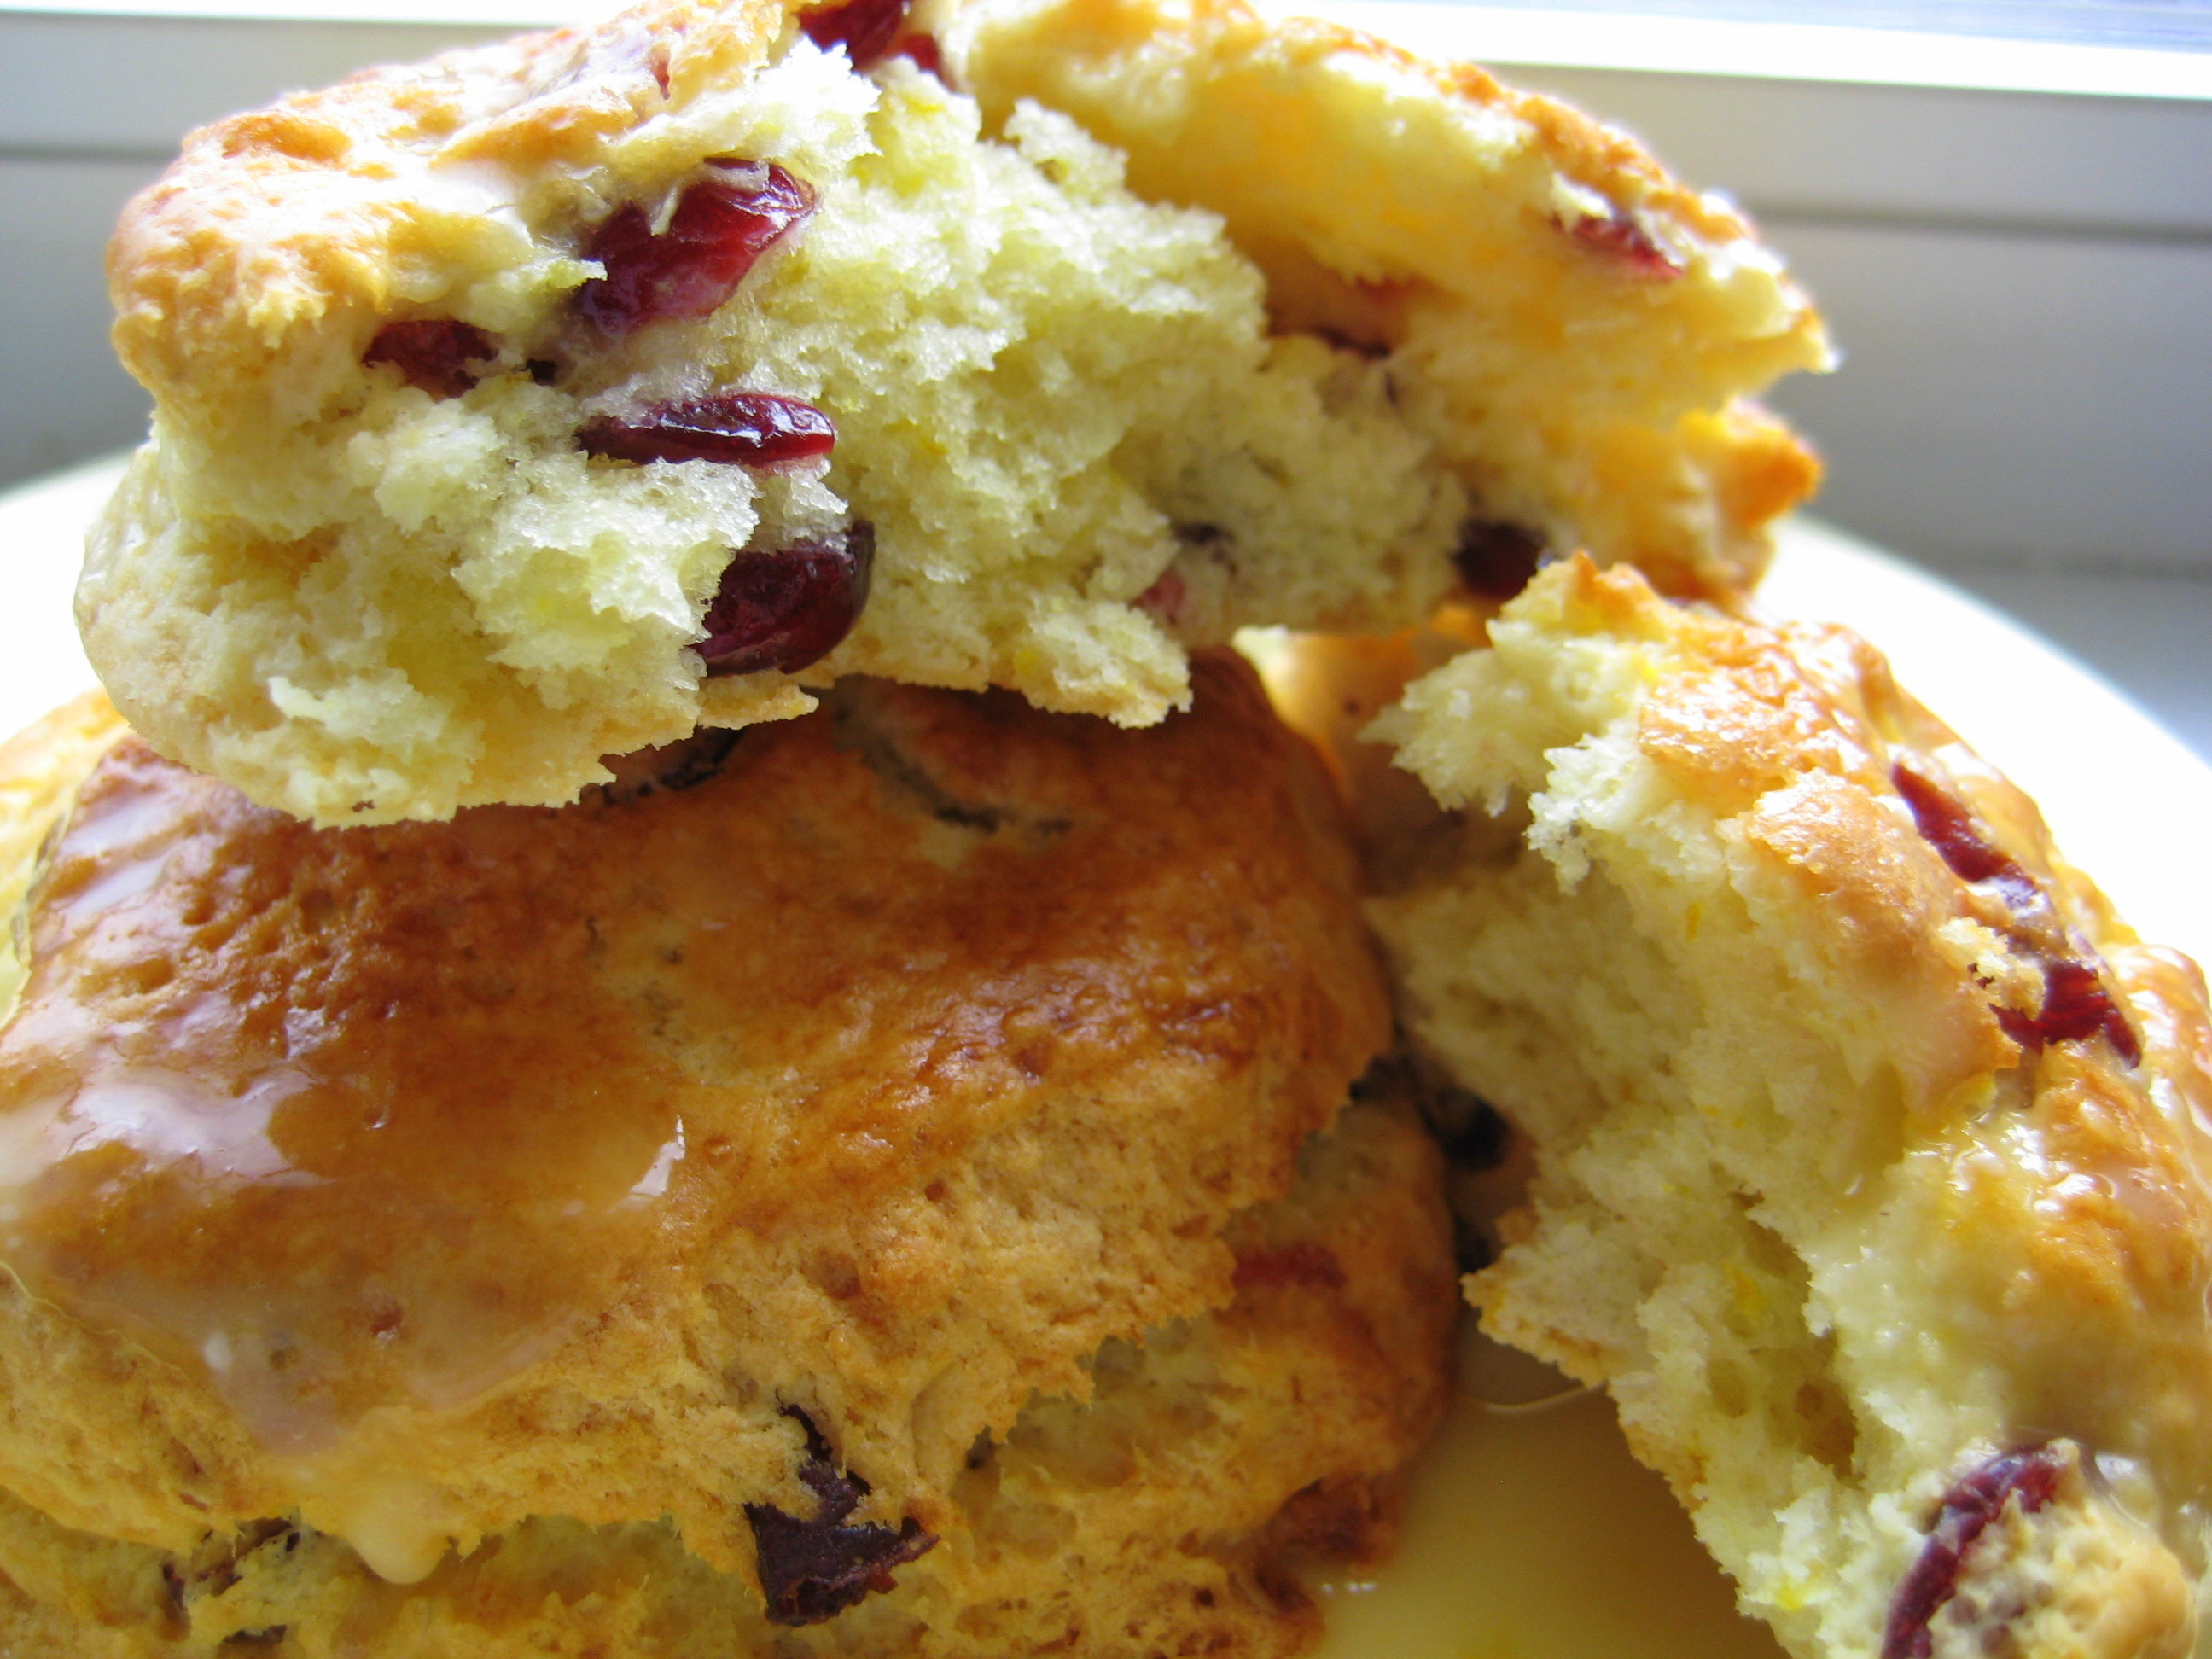 Flaky, buttery, yum